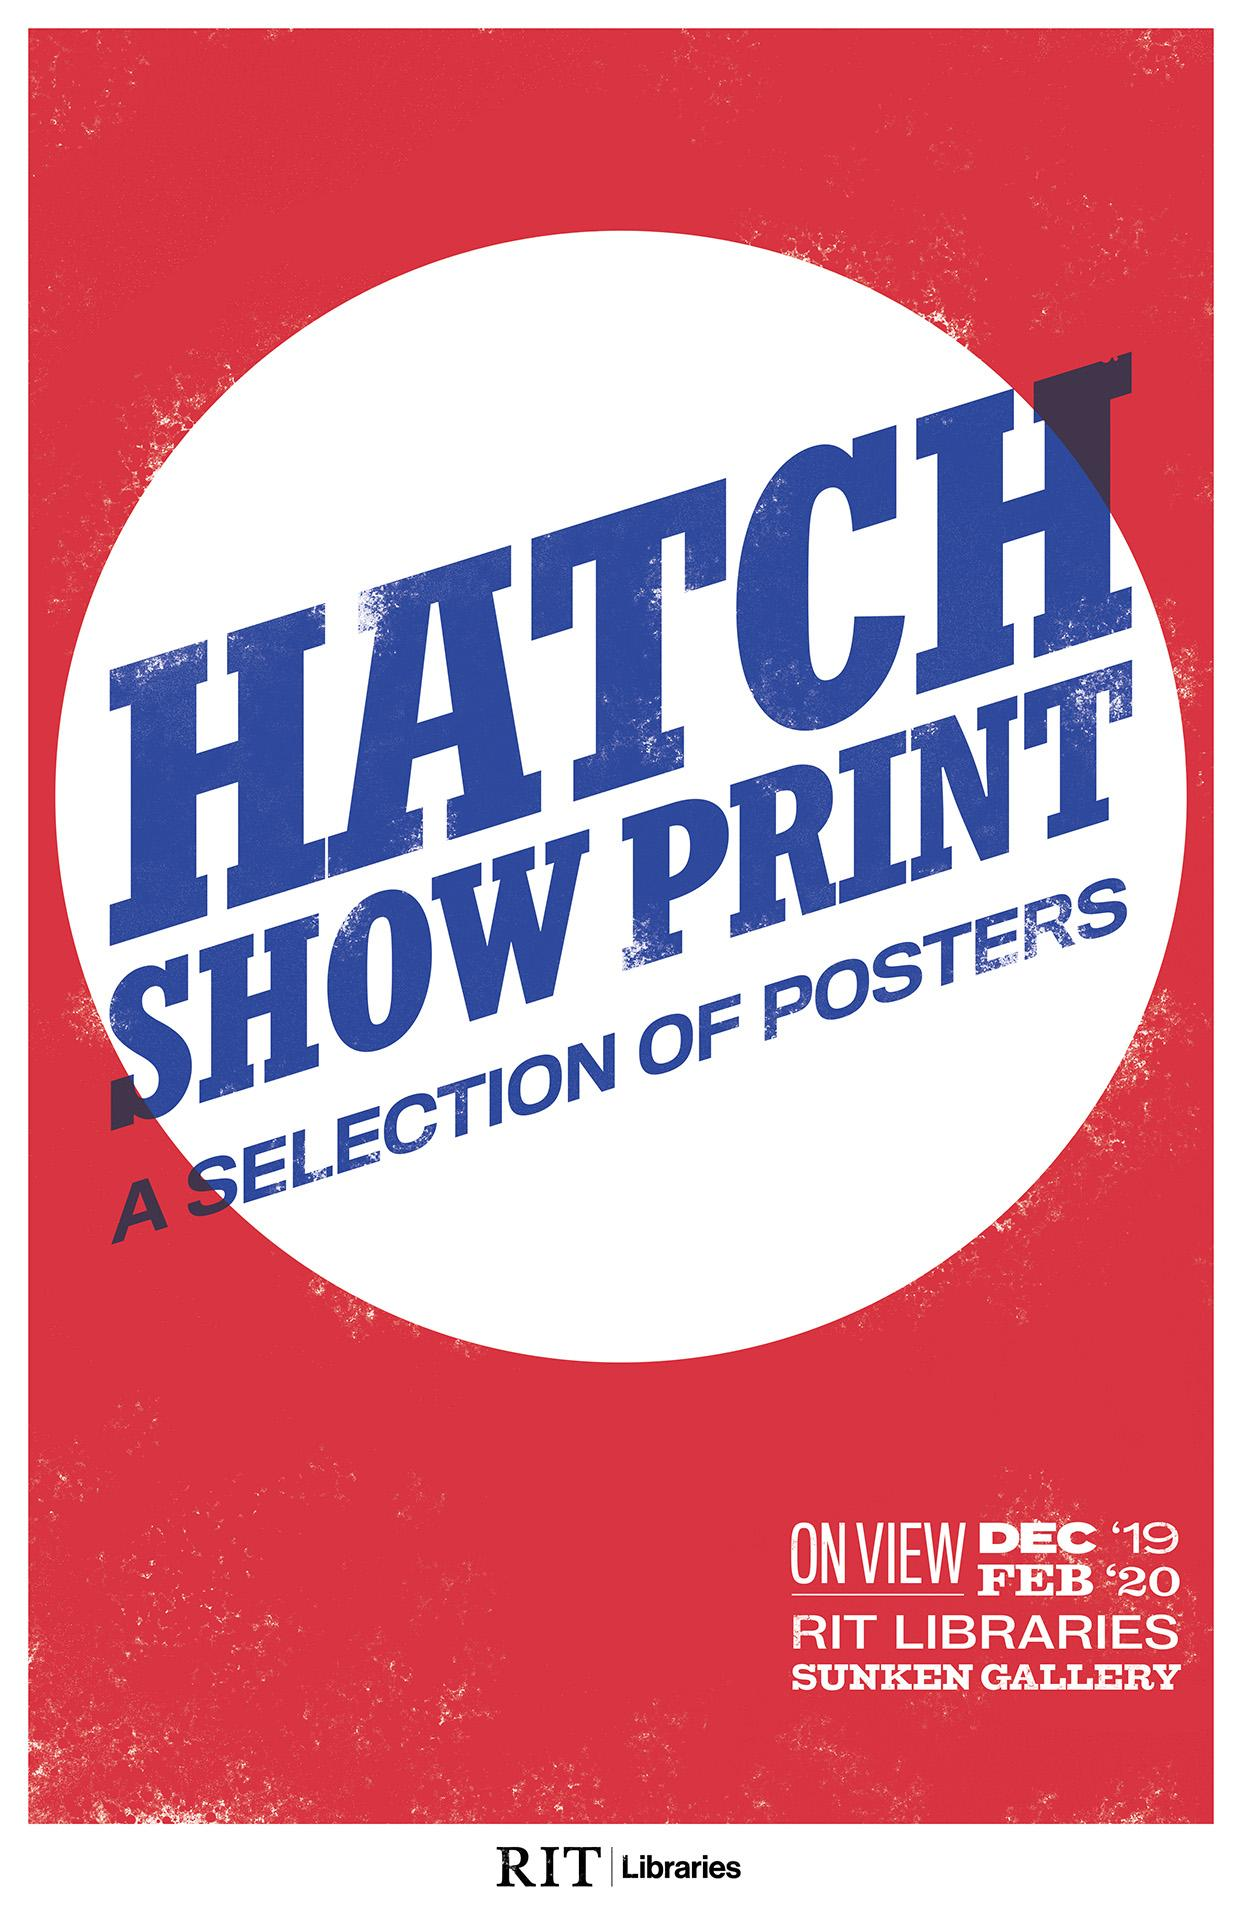 Letterpress poster. Text reads Hatch Show Print. A Selection of Posters. On view December 2019 - February 2020.